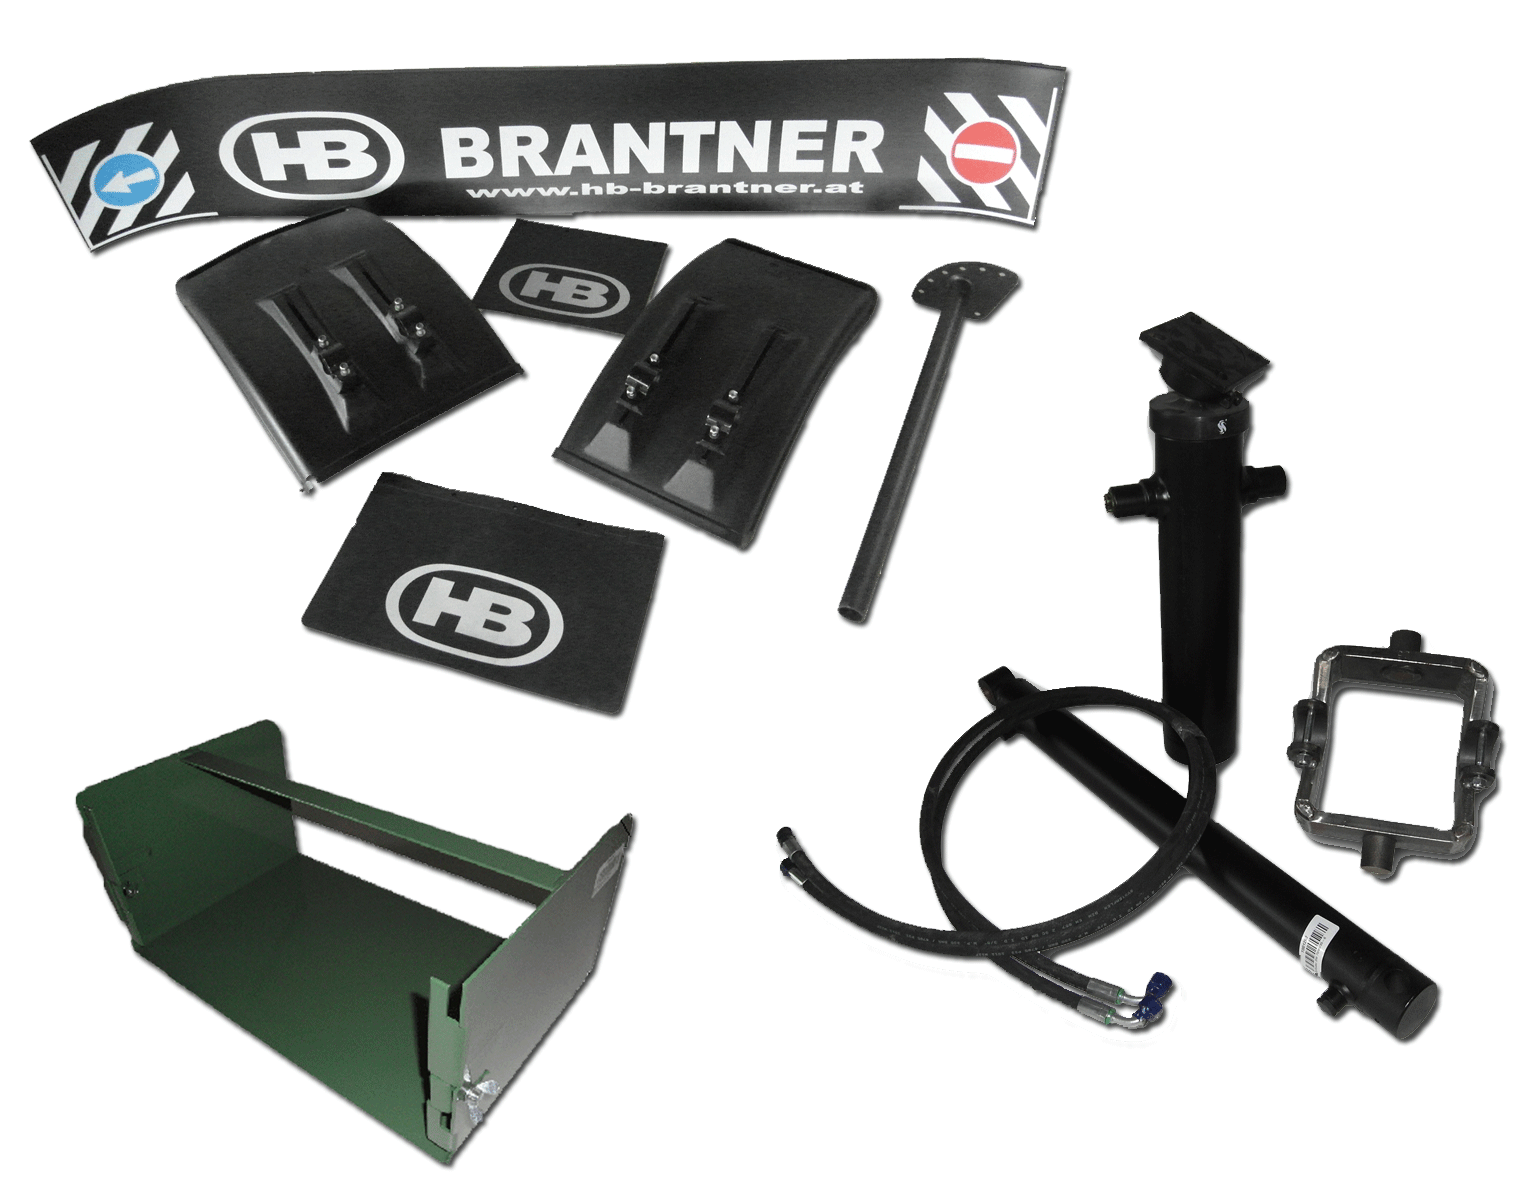 Brantner Webshop with more than 3000 spare parts